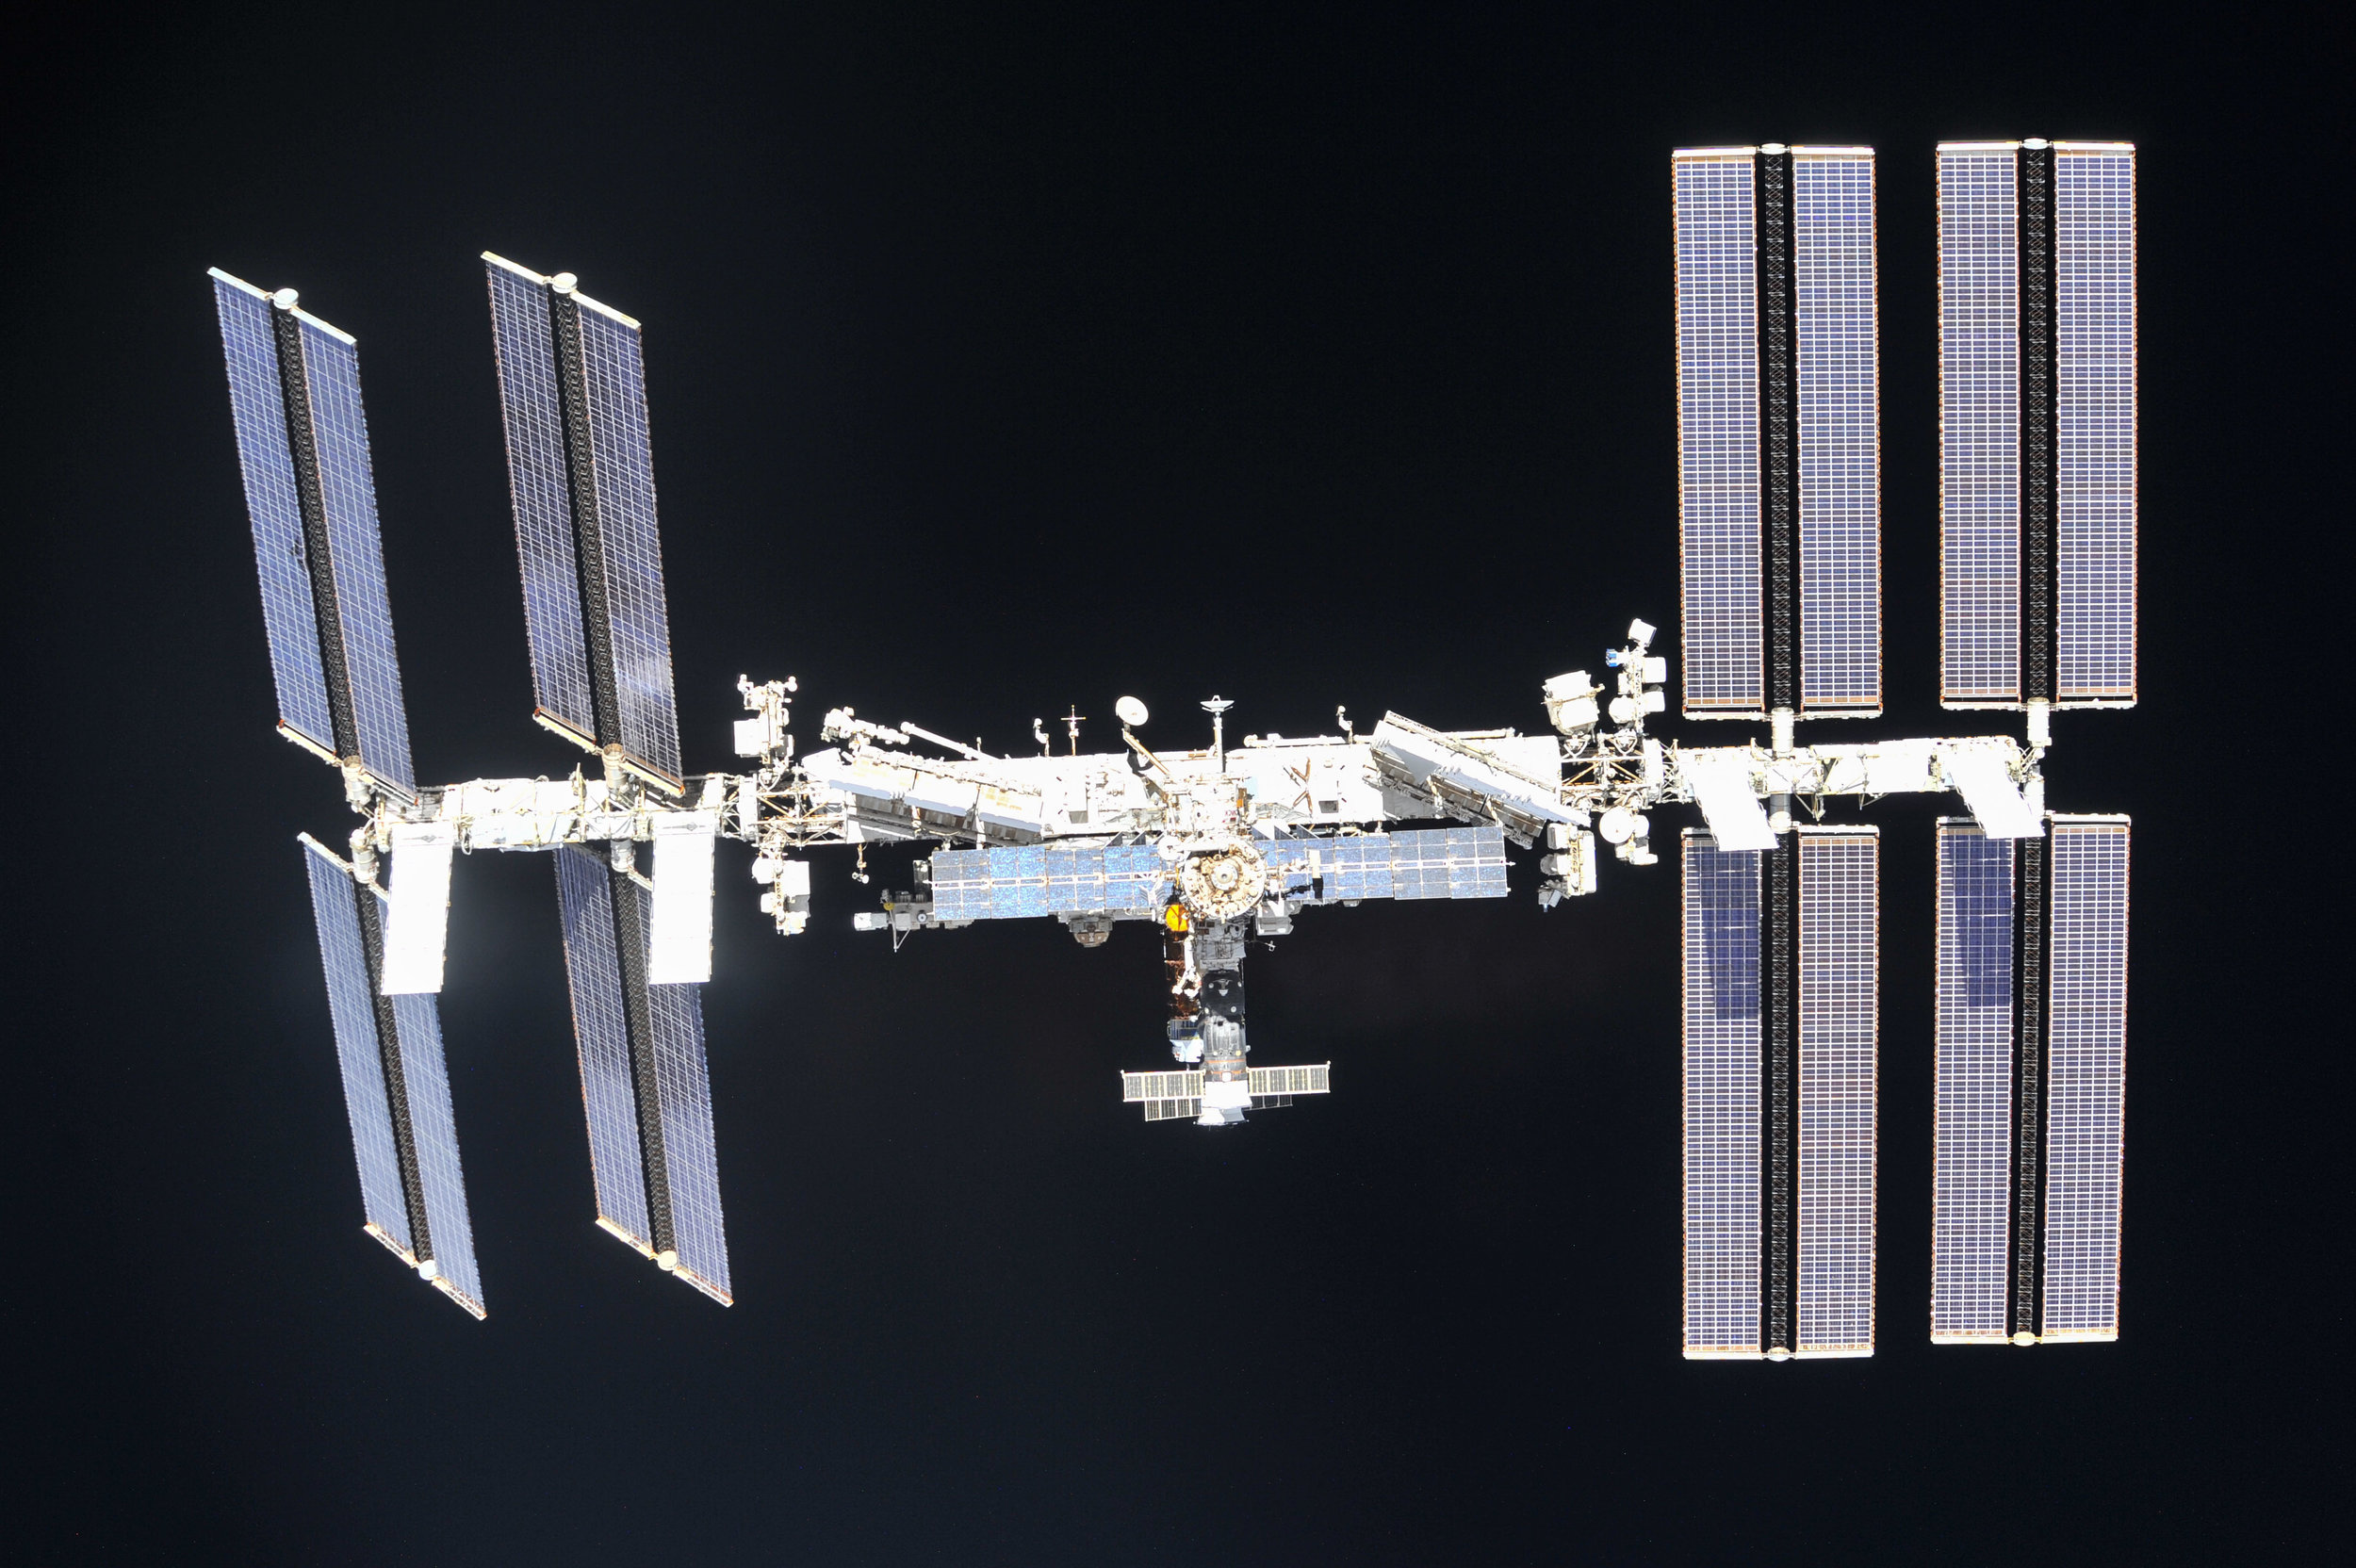 the-international-space-station-as-of-oct-4-2018_45585669022_o.jpg